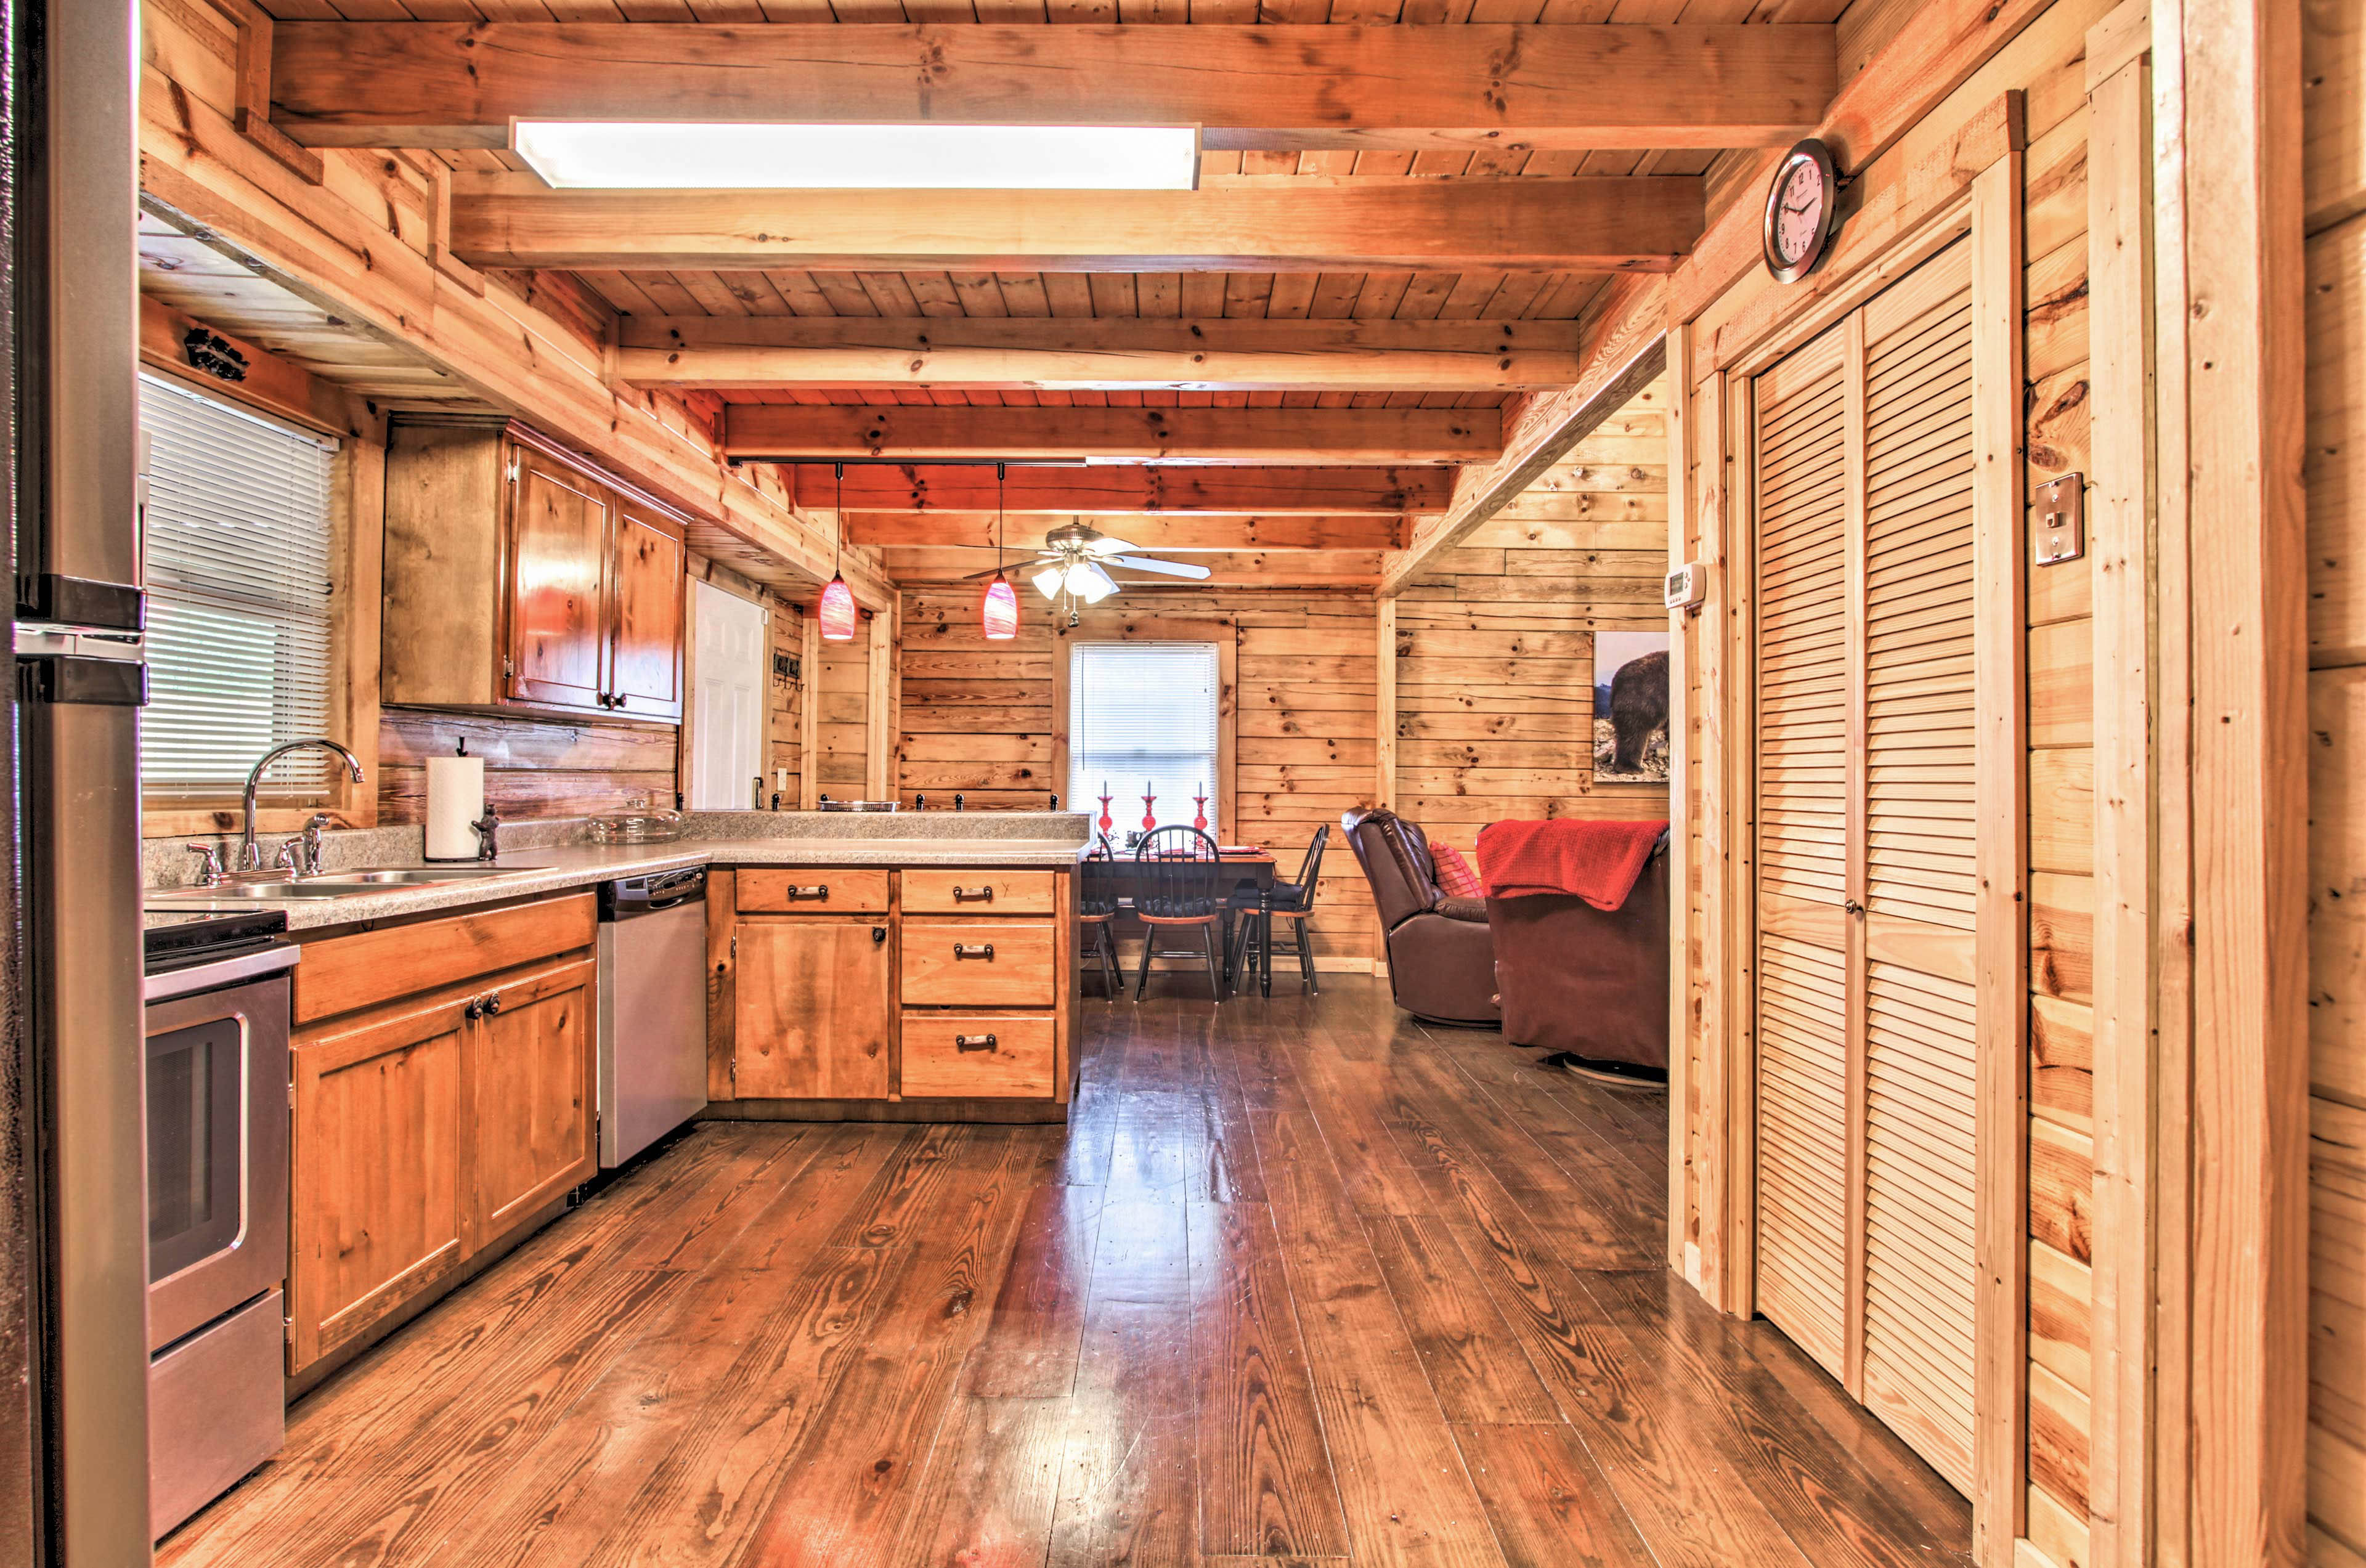 You'll have plenty of room to cook your favorite meals!